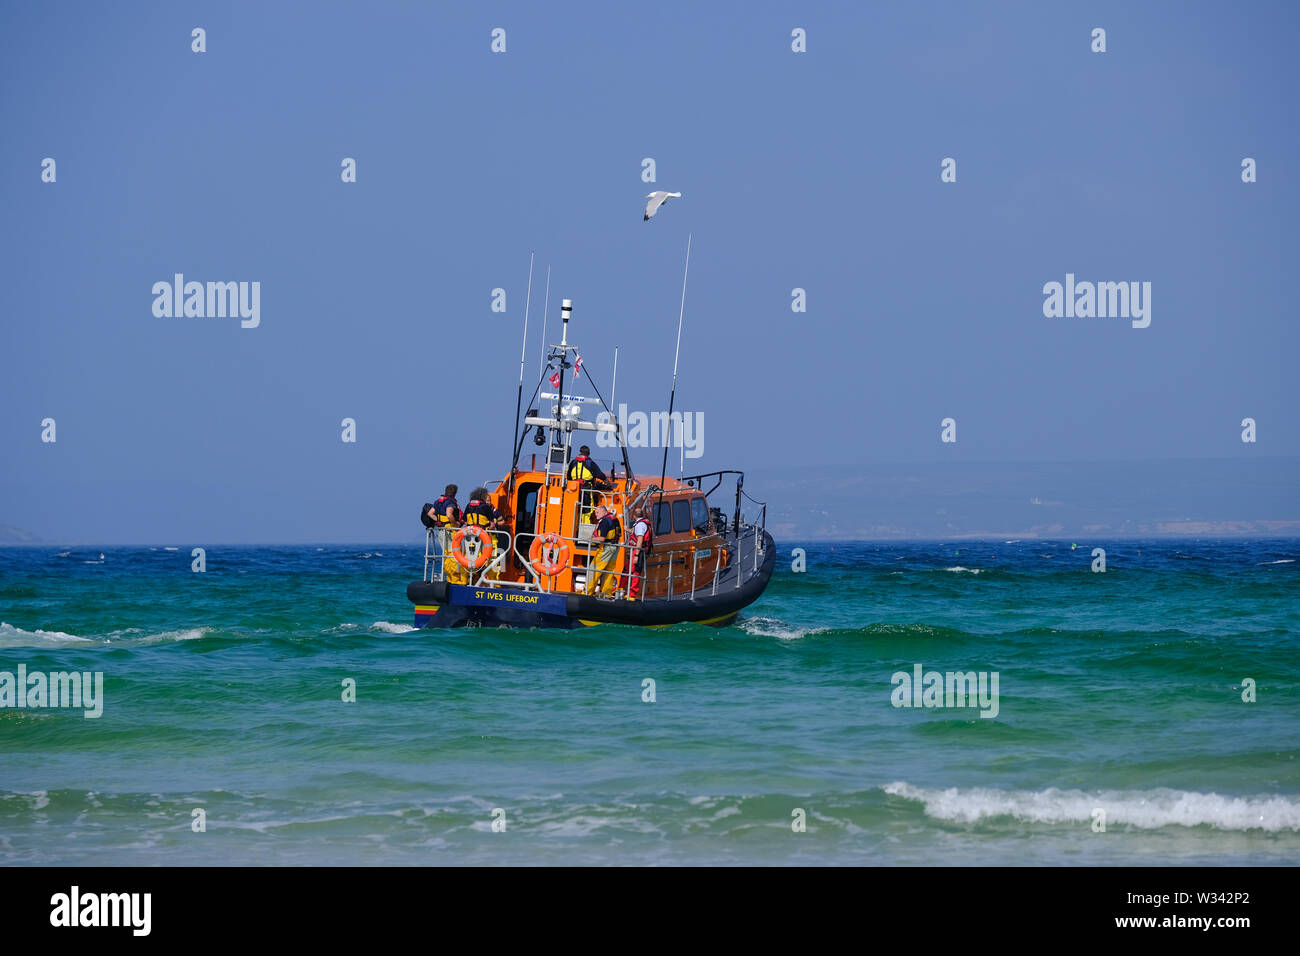 The RNLI Lifeboat launching on an exercise at St Ives in Cornwall - Stock Image